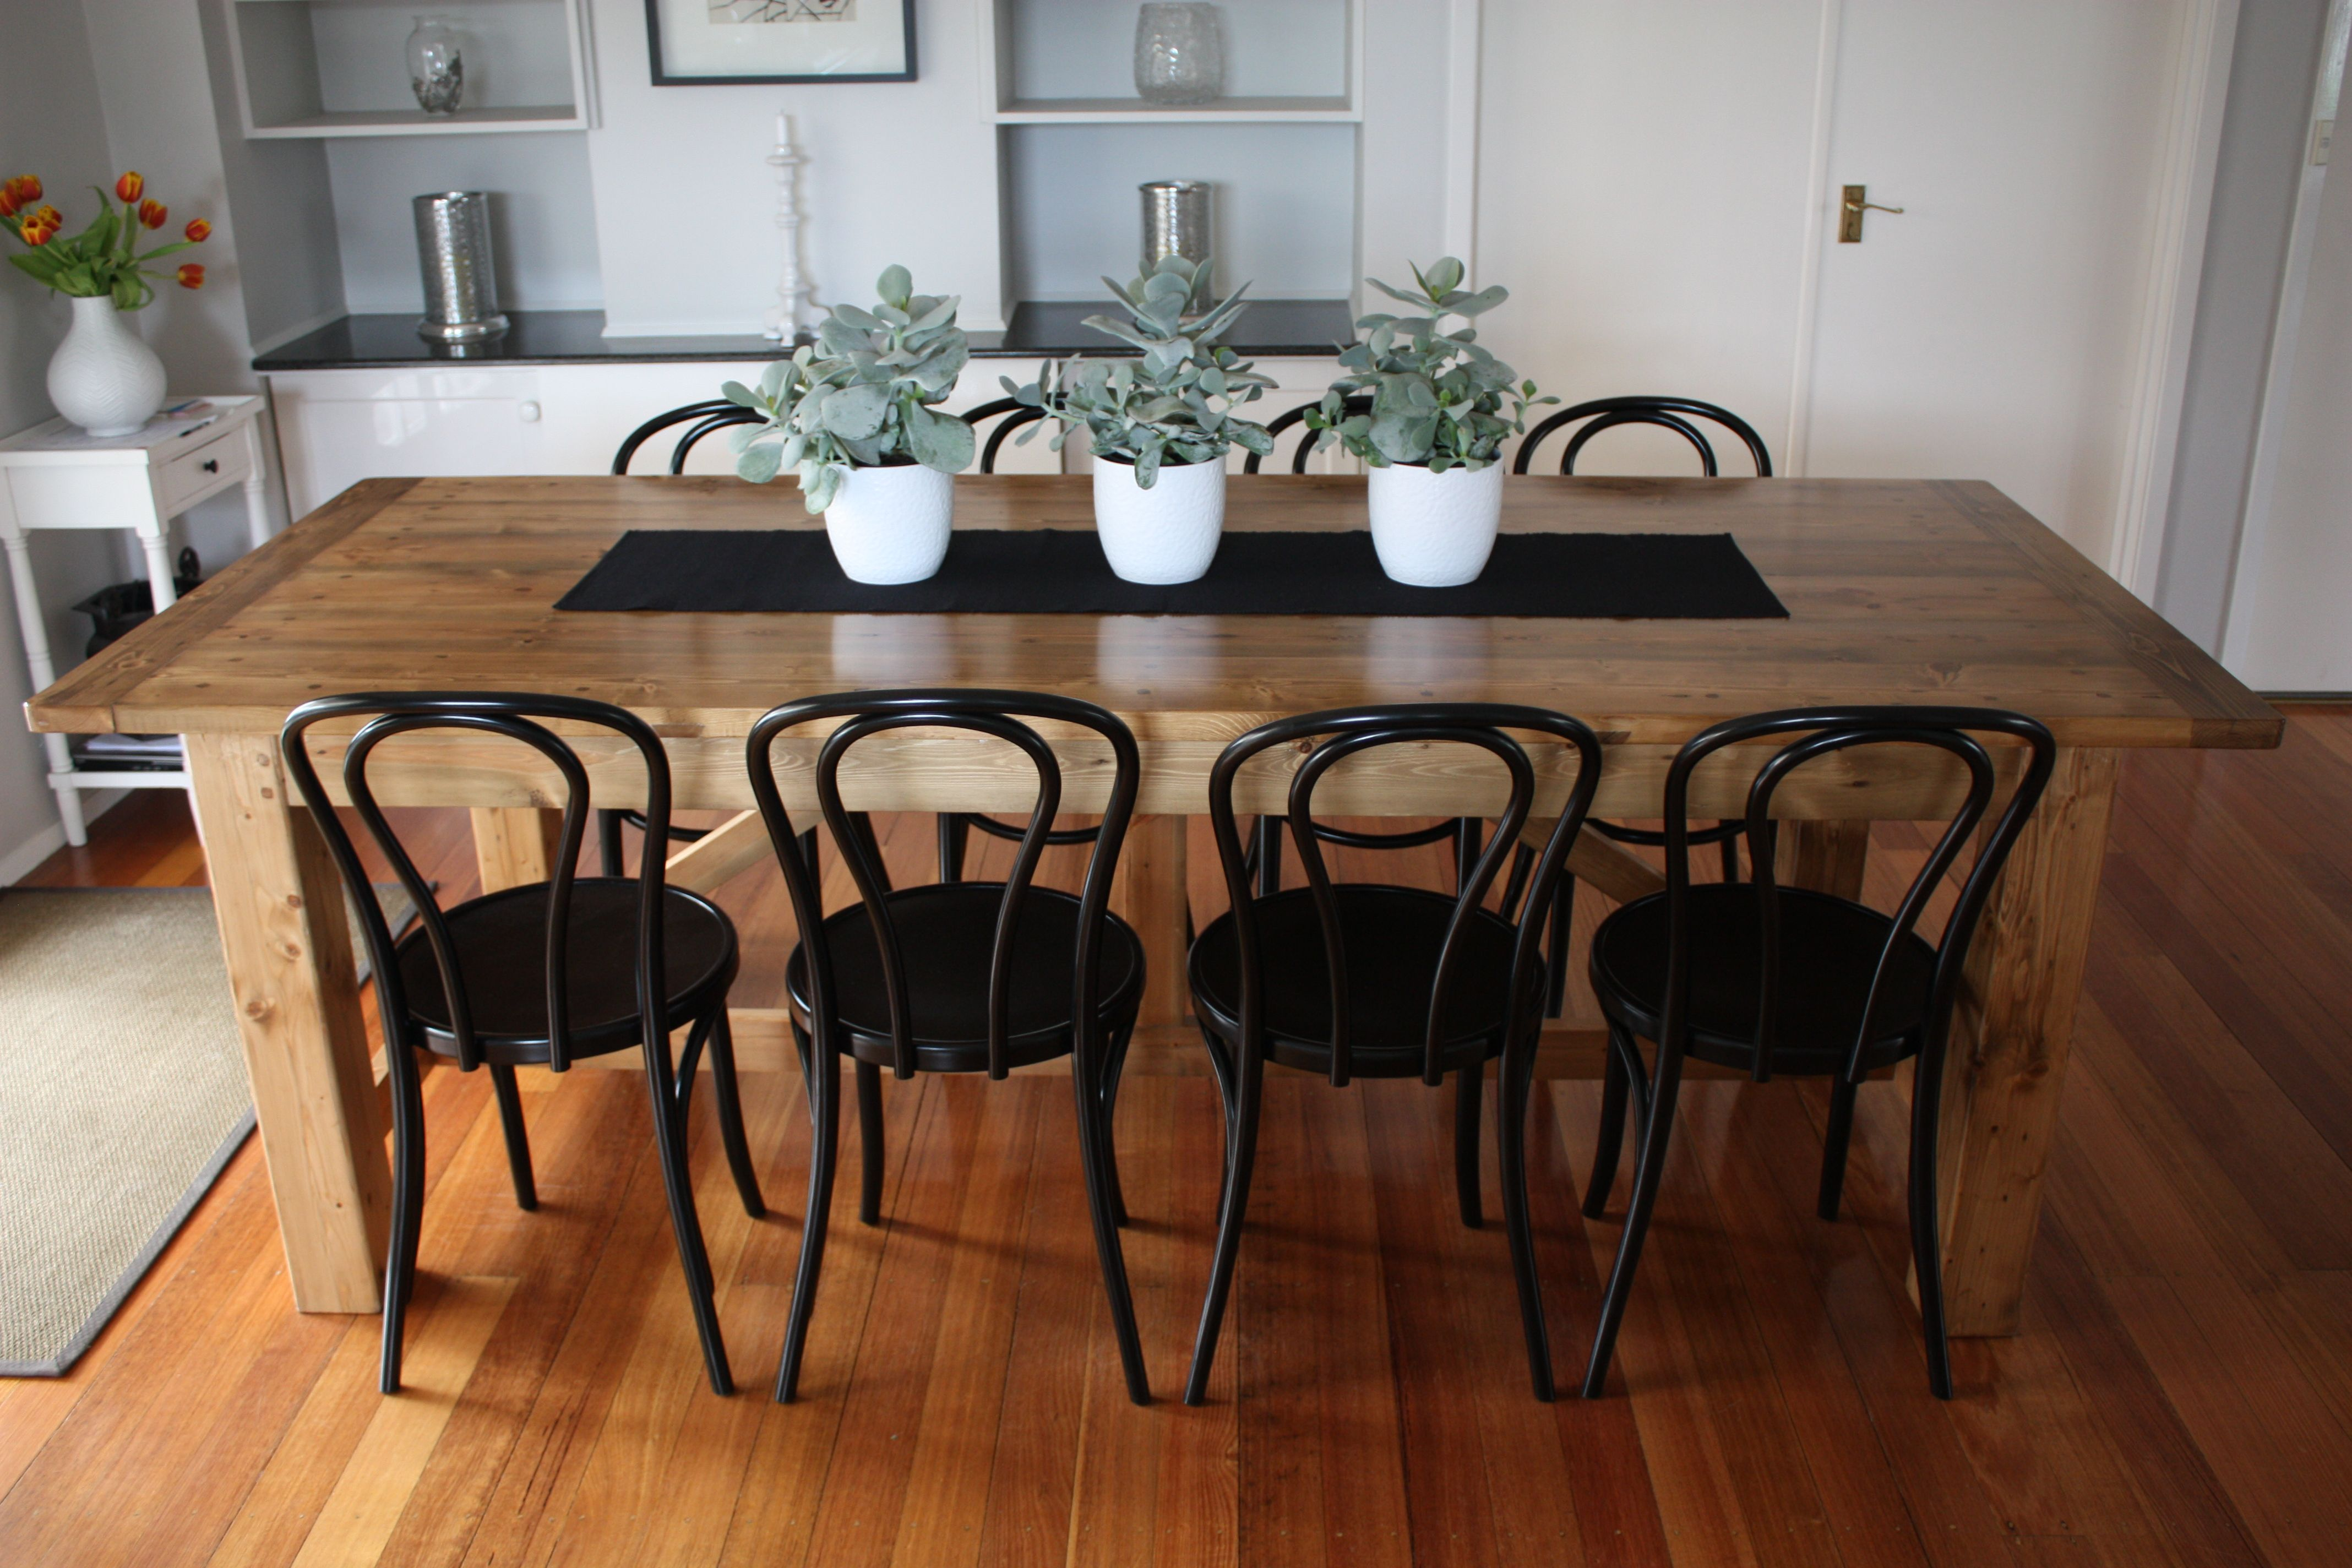 Vecelo Dining Table With 4 Chairs Black Dining Table Dining Table Black Black Dining Table Set